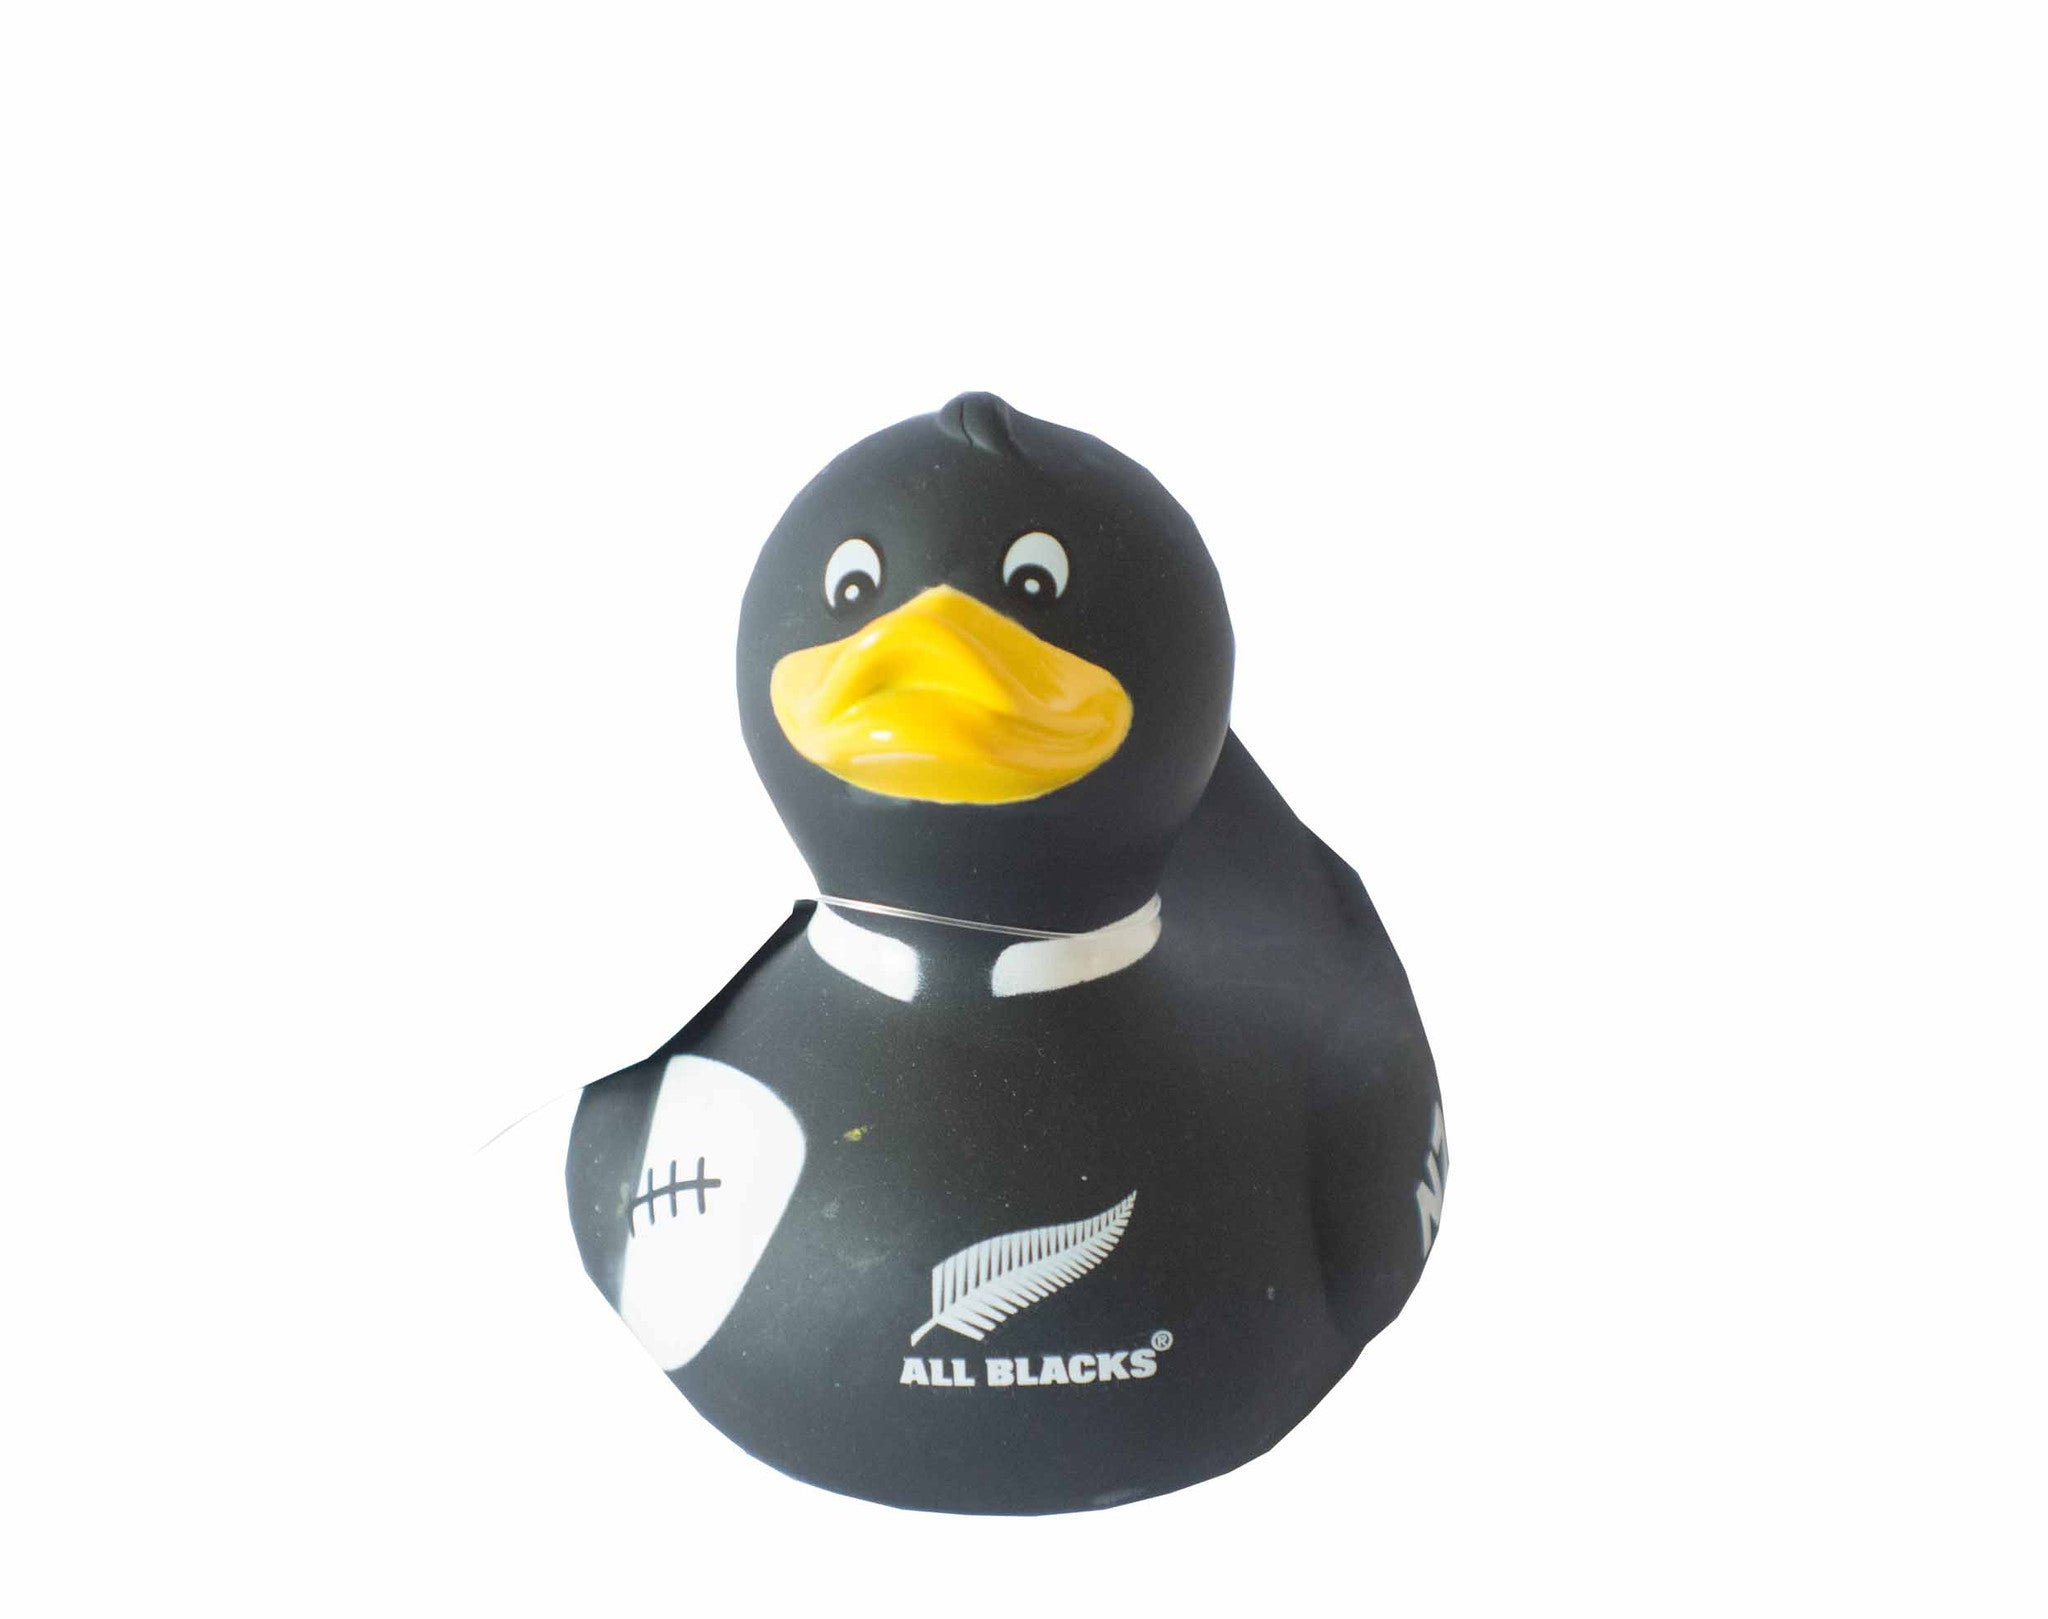 All Black toy duck, NZ souvenir